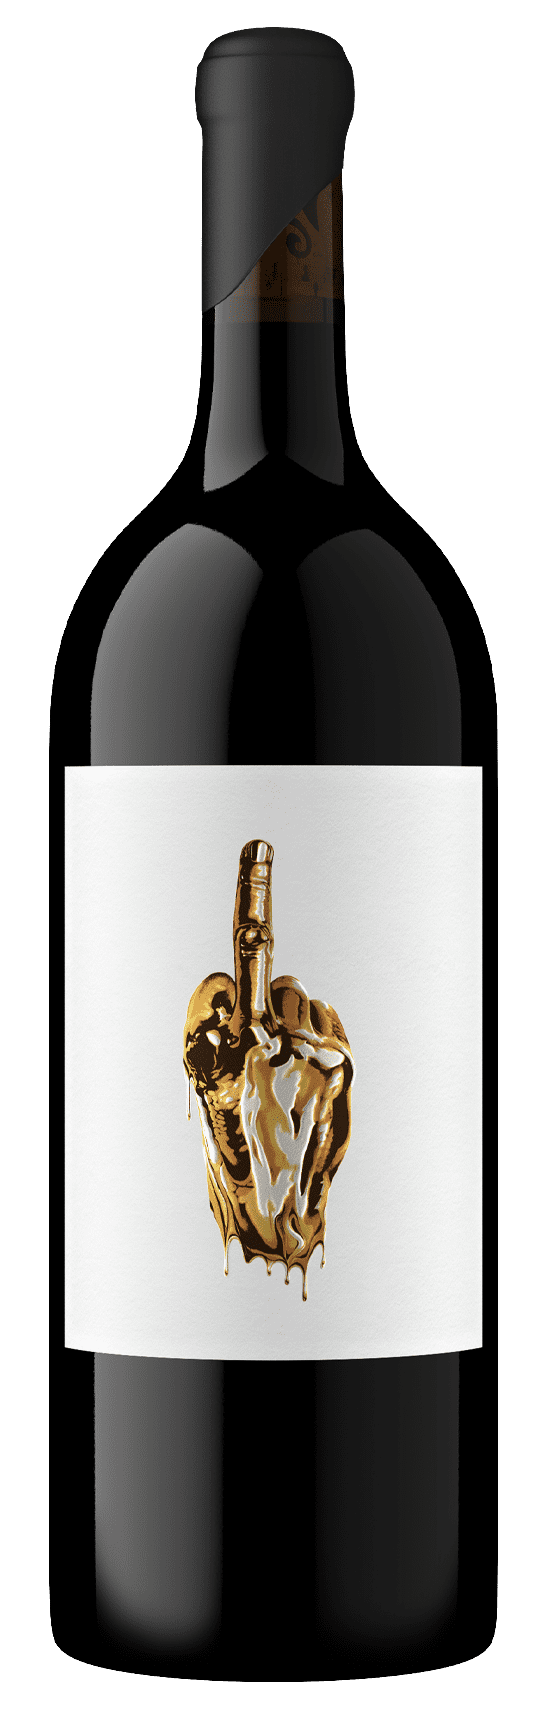 2019 Middle Finger, Red Wine, Amador County, Shake Ridge Vineyard Magnum (1.5 l)